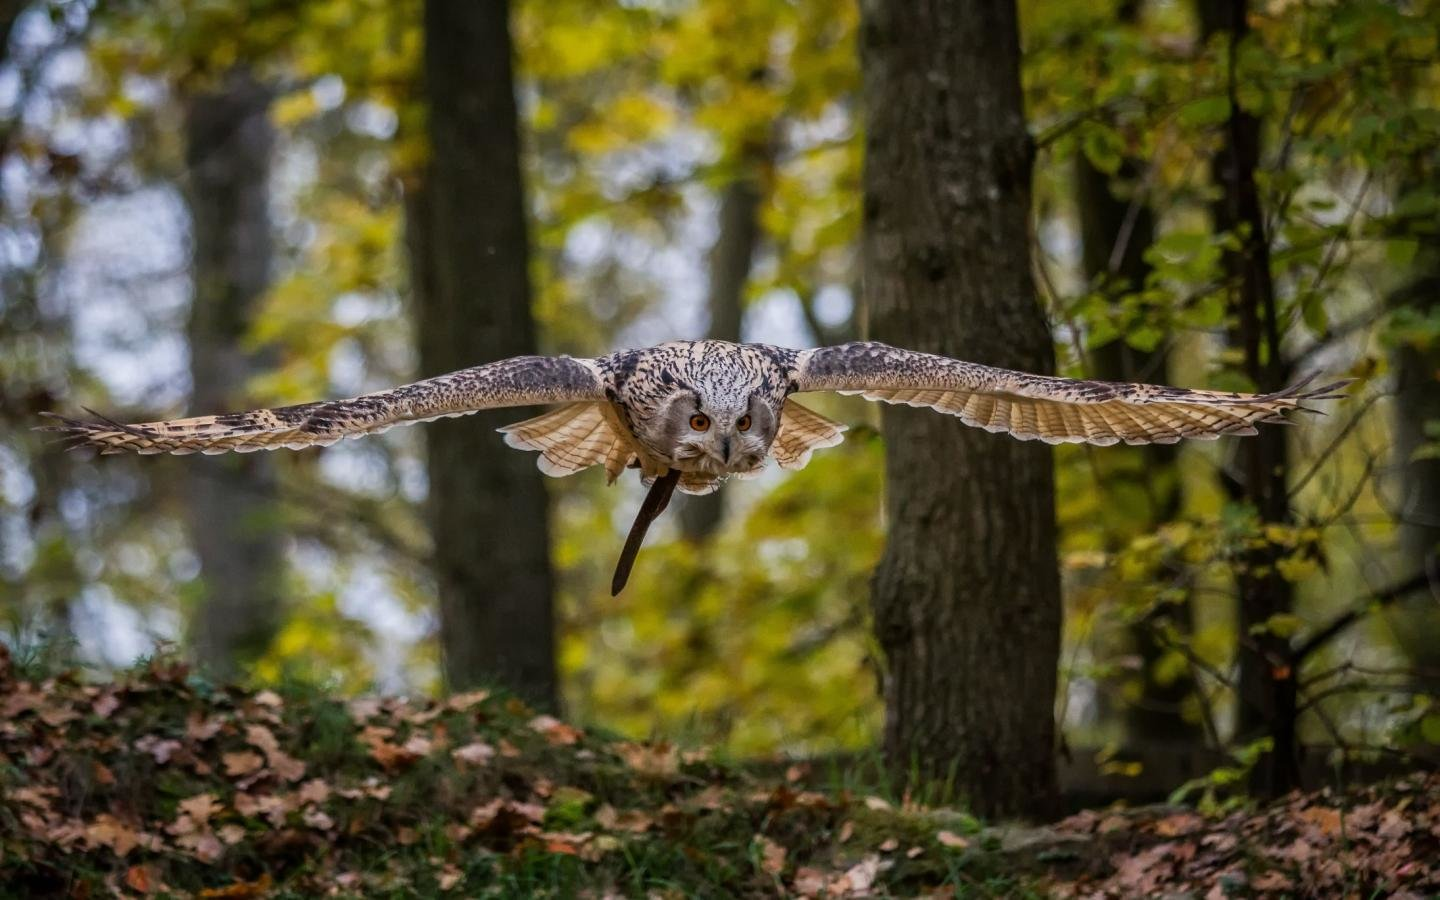 Download hd 1440x900 Owl PC background ID:237160 for free